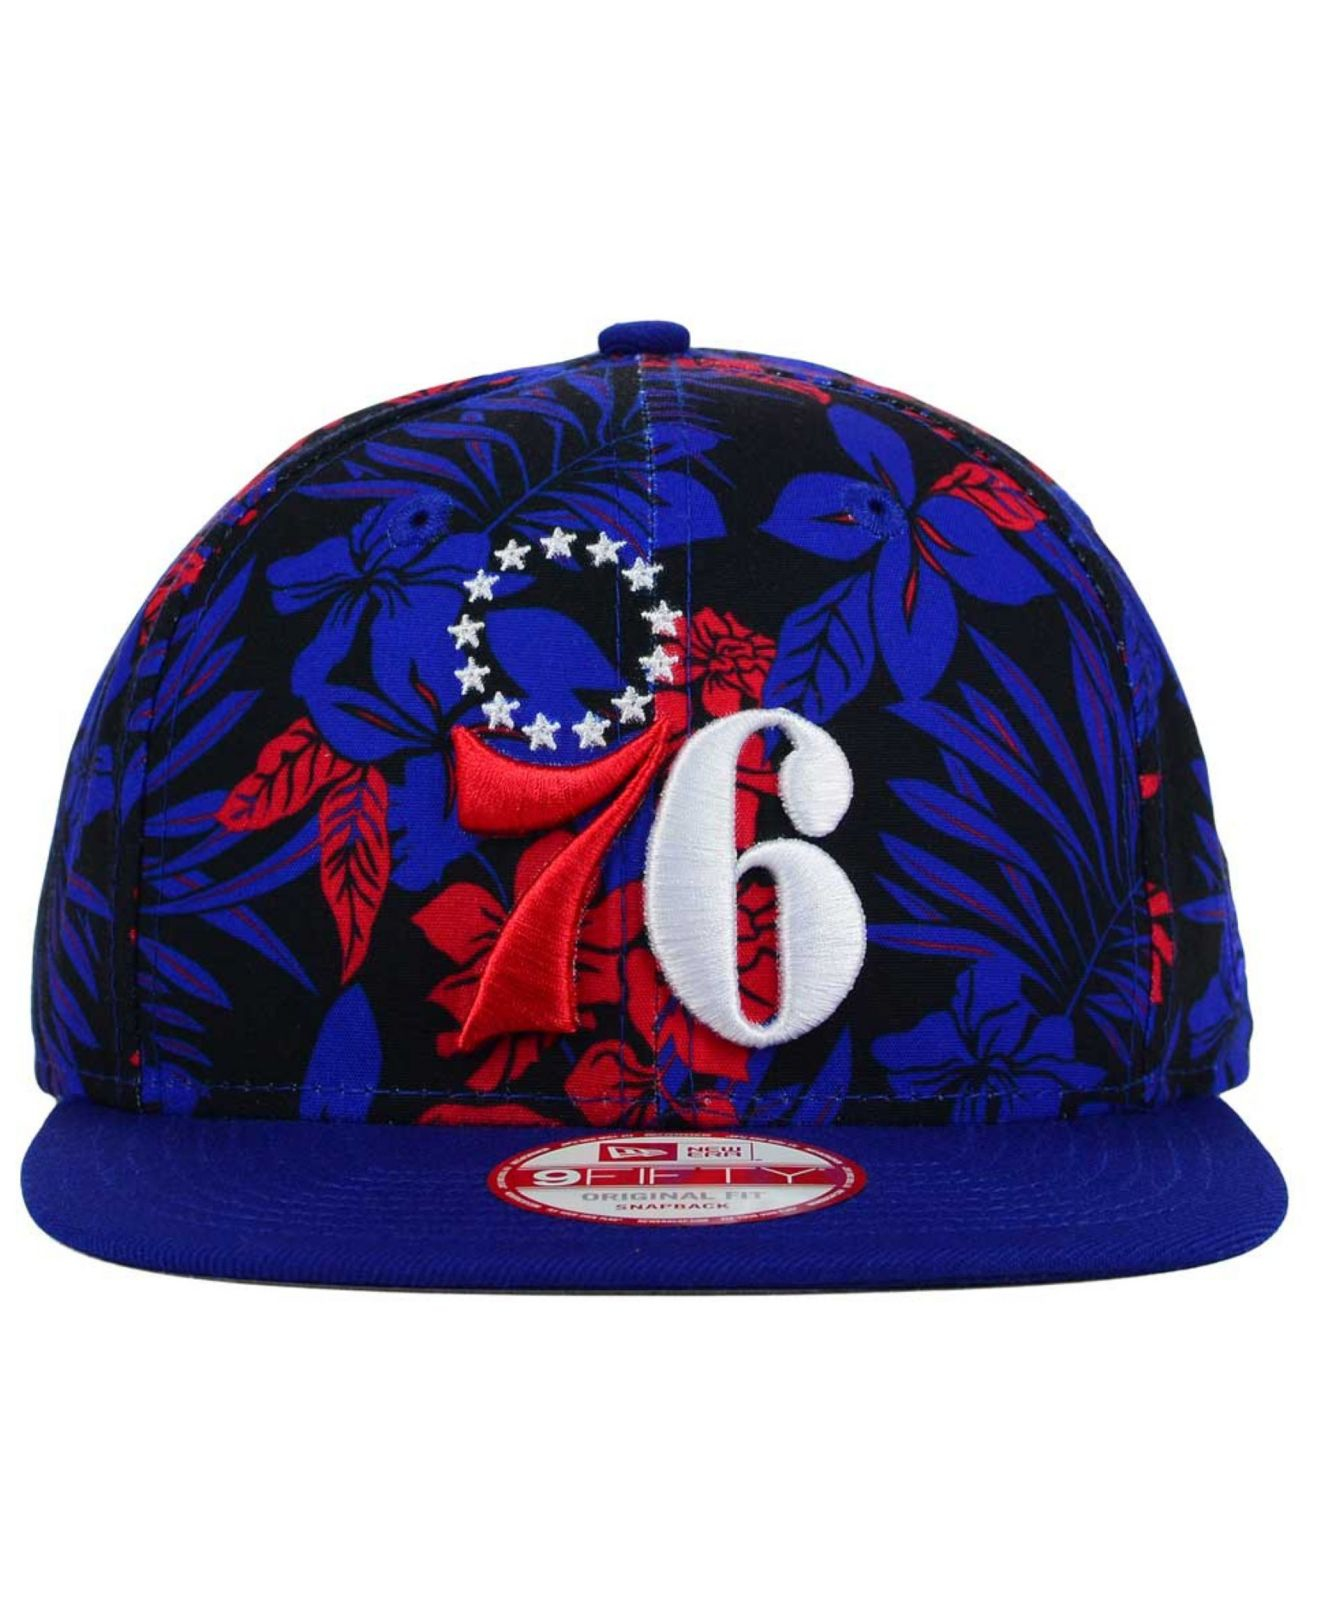 low priced 80b84 67ec8 inexpensive pretty cool 5d4b3 6729e lyst ktz philadelphia 76ers wowie 9fifty  snapback cap in b f7e2a